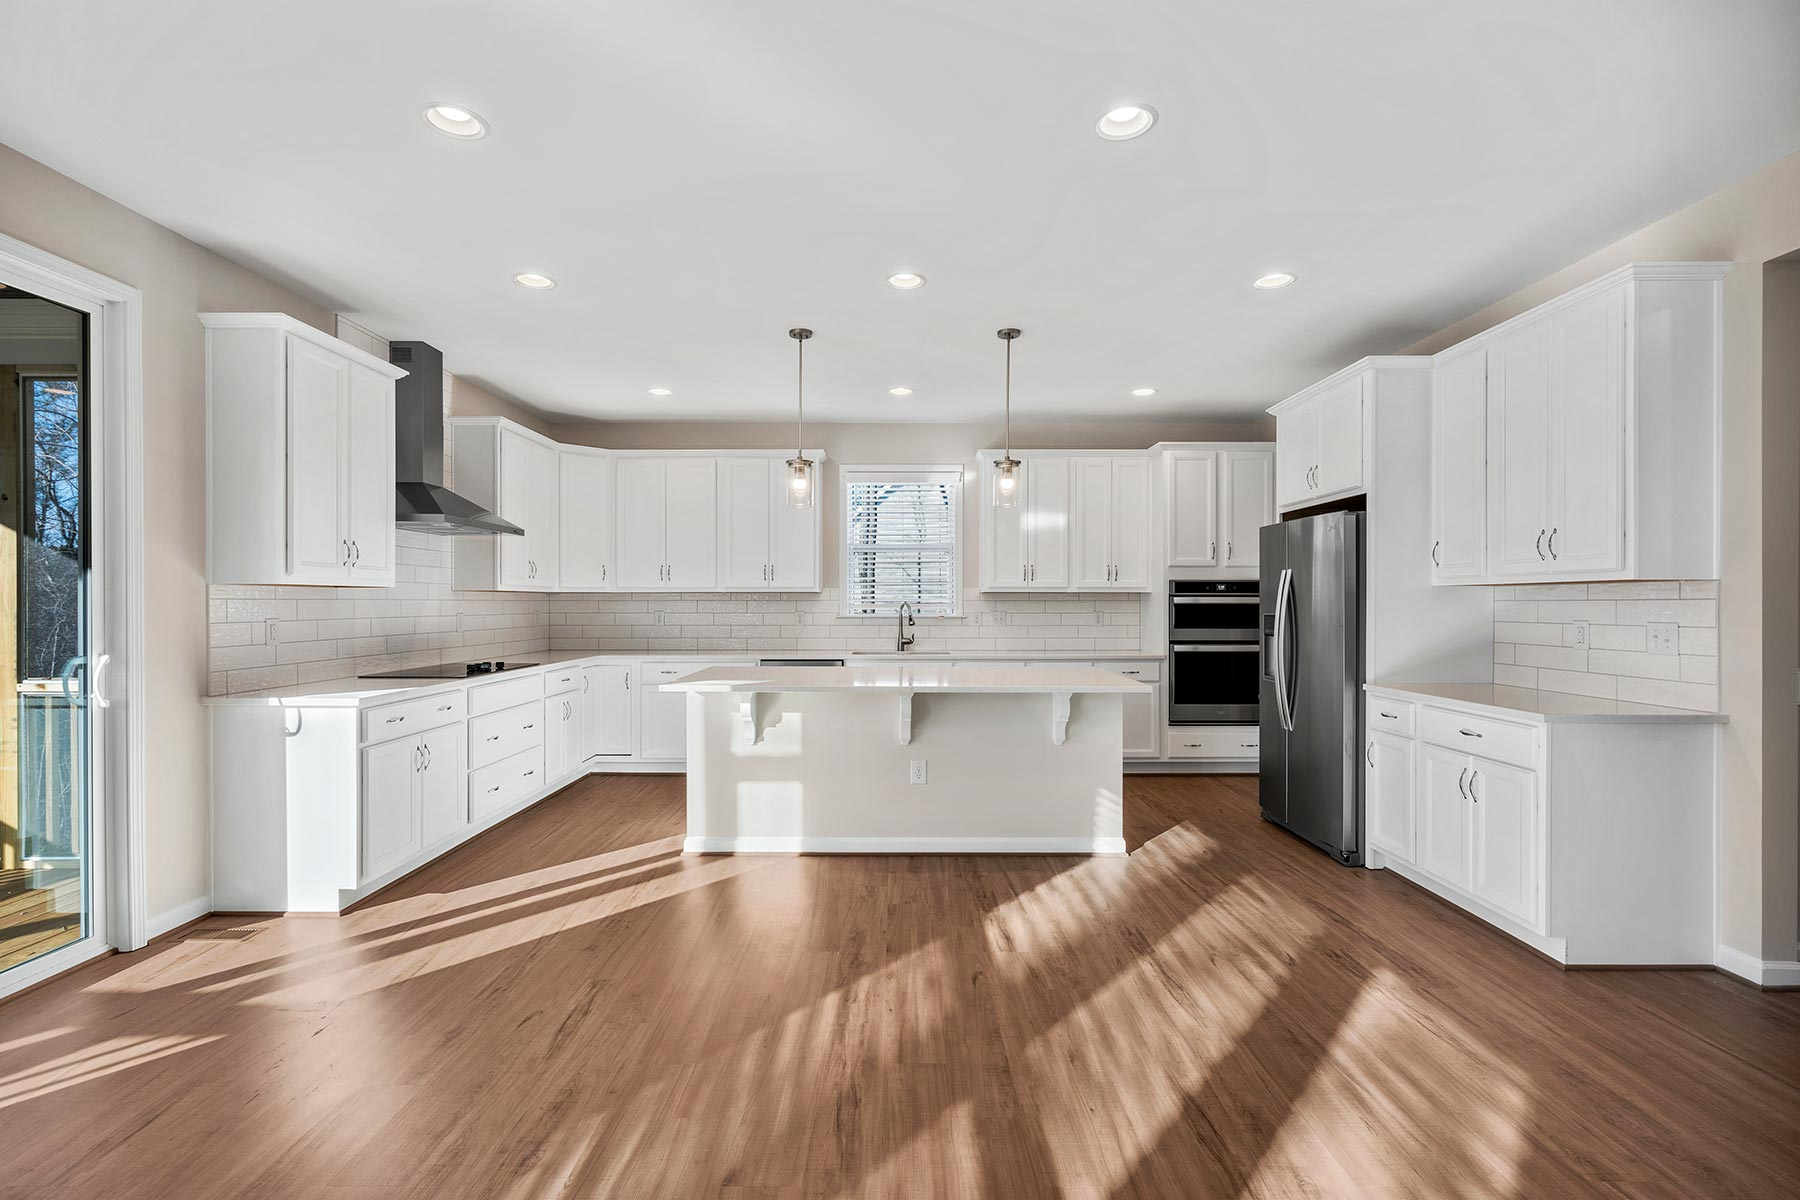 Marshall Plan Kitchen at Fairview Park in Cary North Carolina by Mattamy Homes